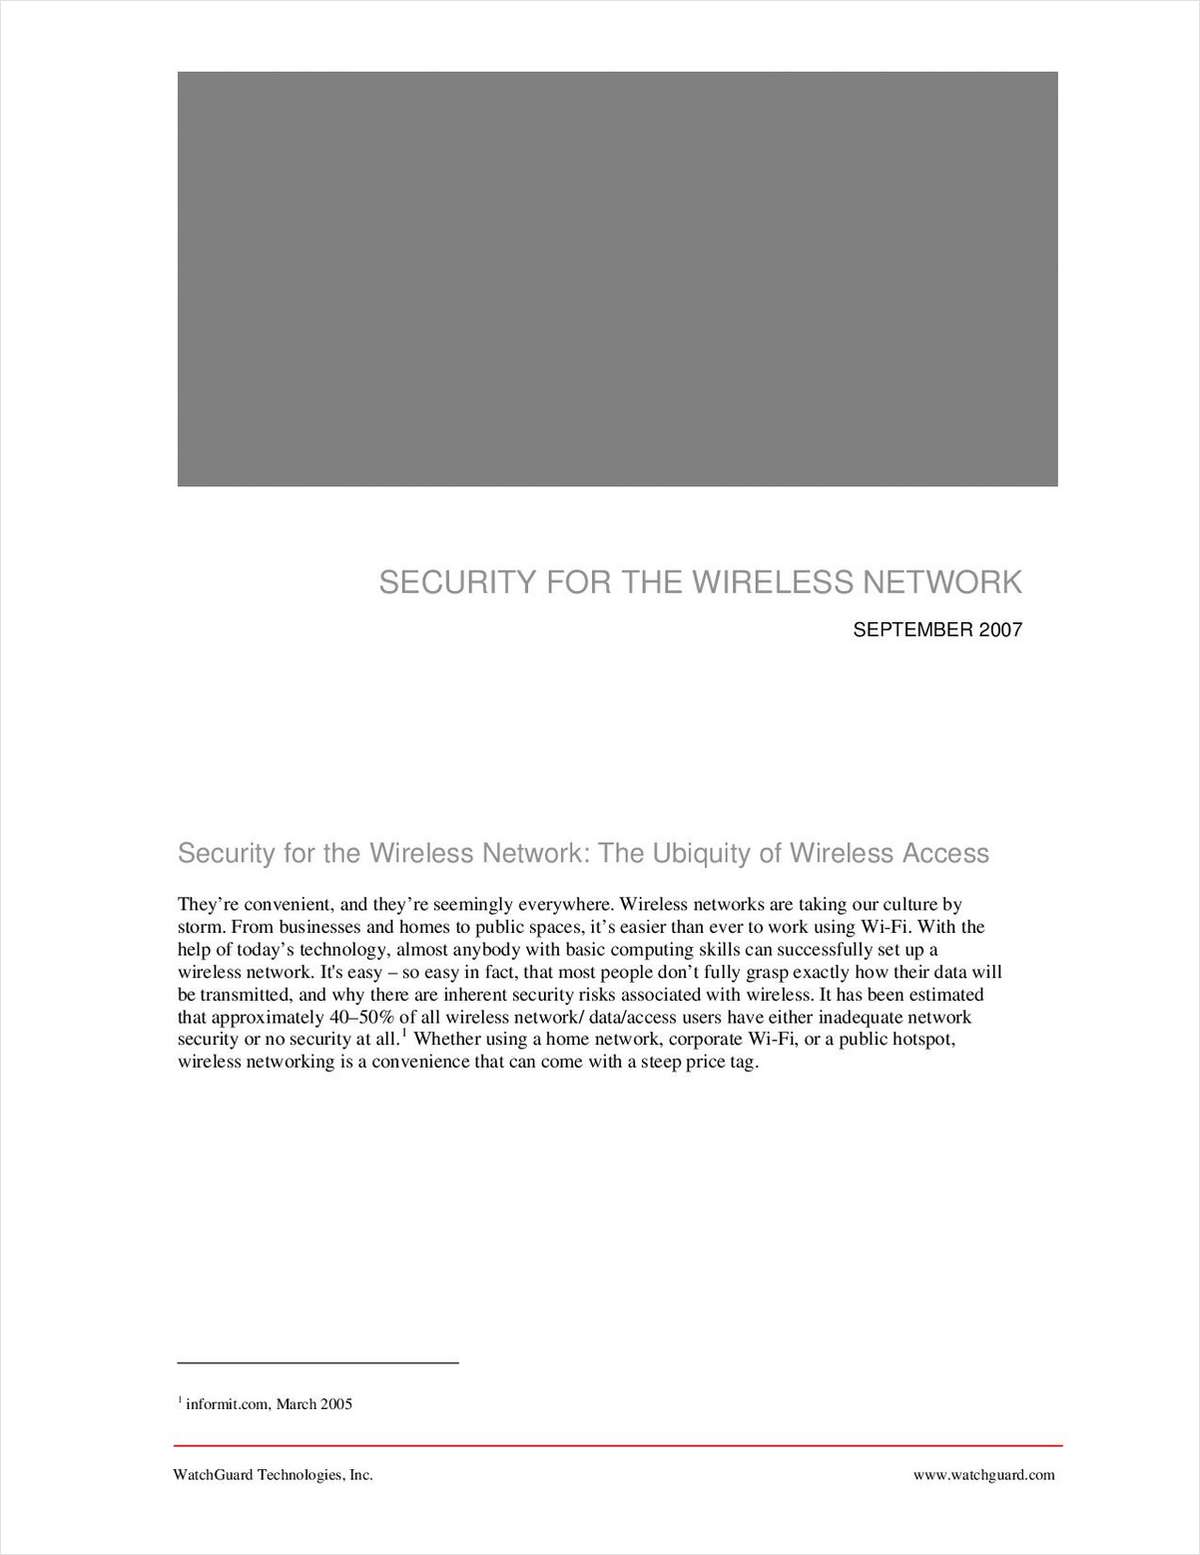 Security for the Wireless Network: The Ubiquity of Wireless Access